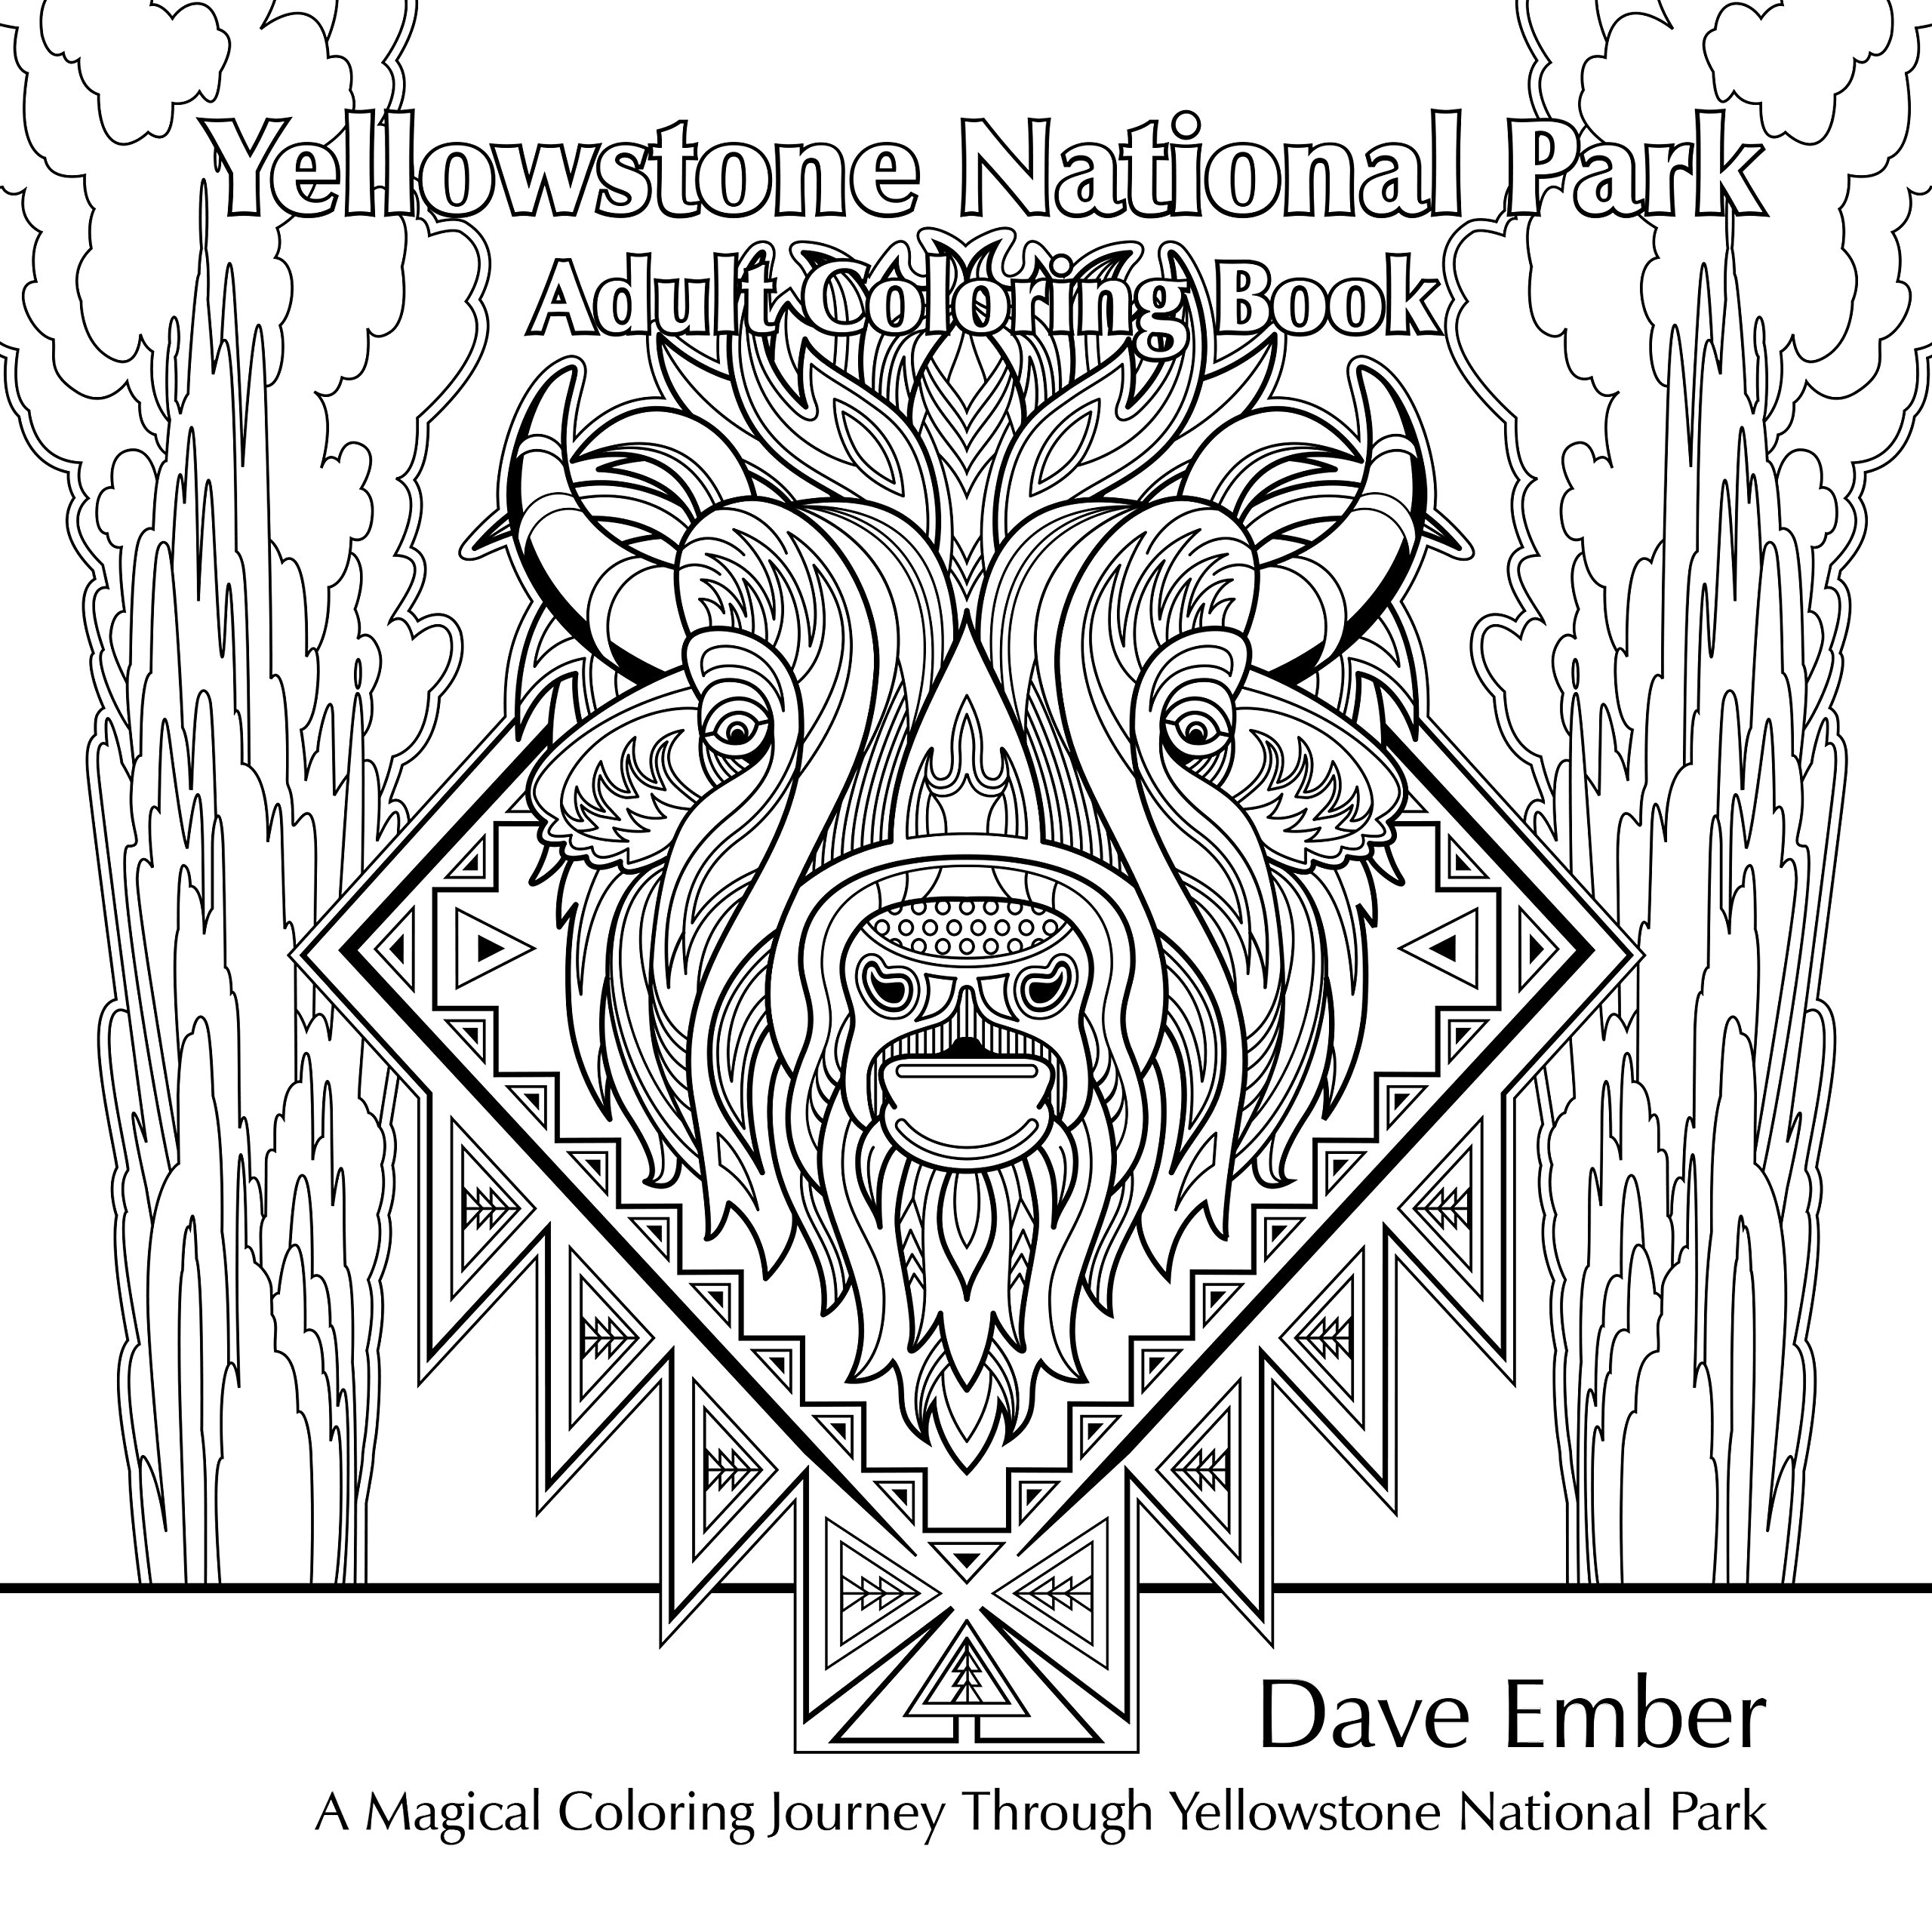 Coloring book landforms - Yellowstone National Park Adult Coloring Book Dave Ember Don Compton 9780975896044 Amazon Com Books